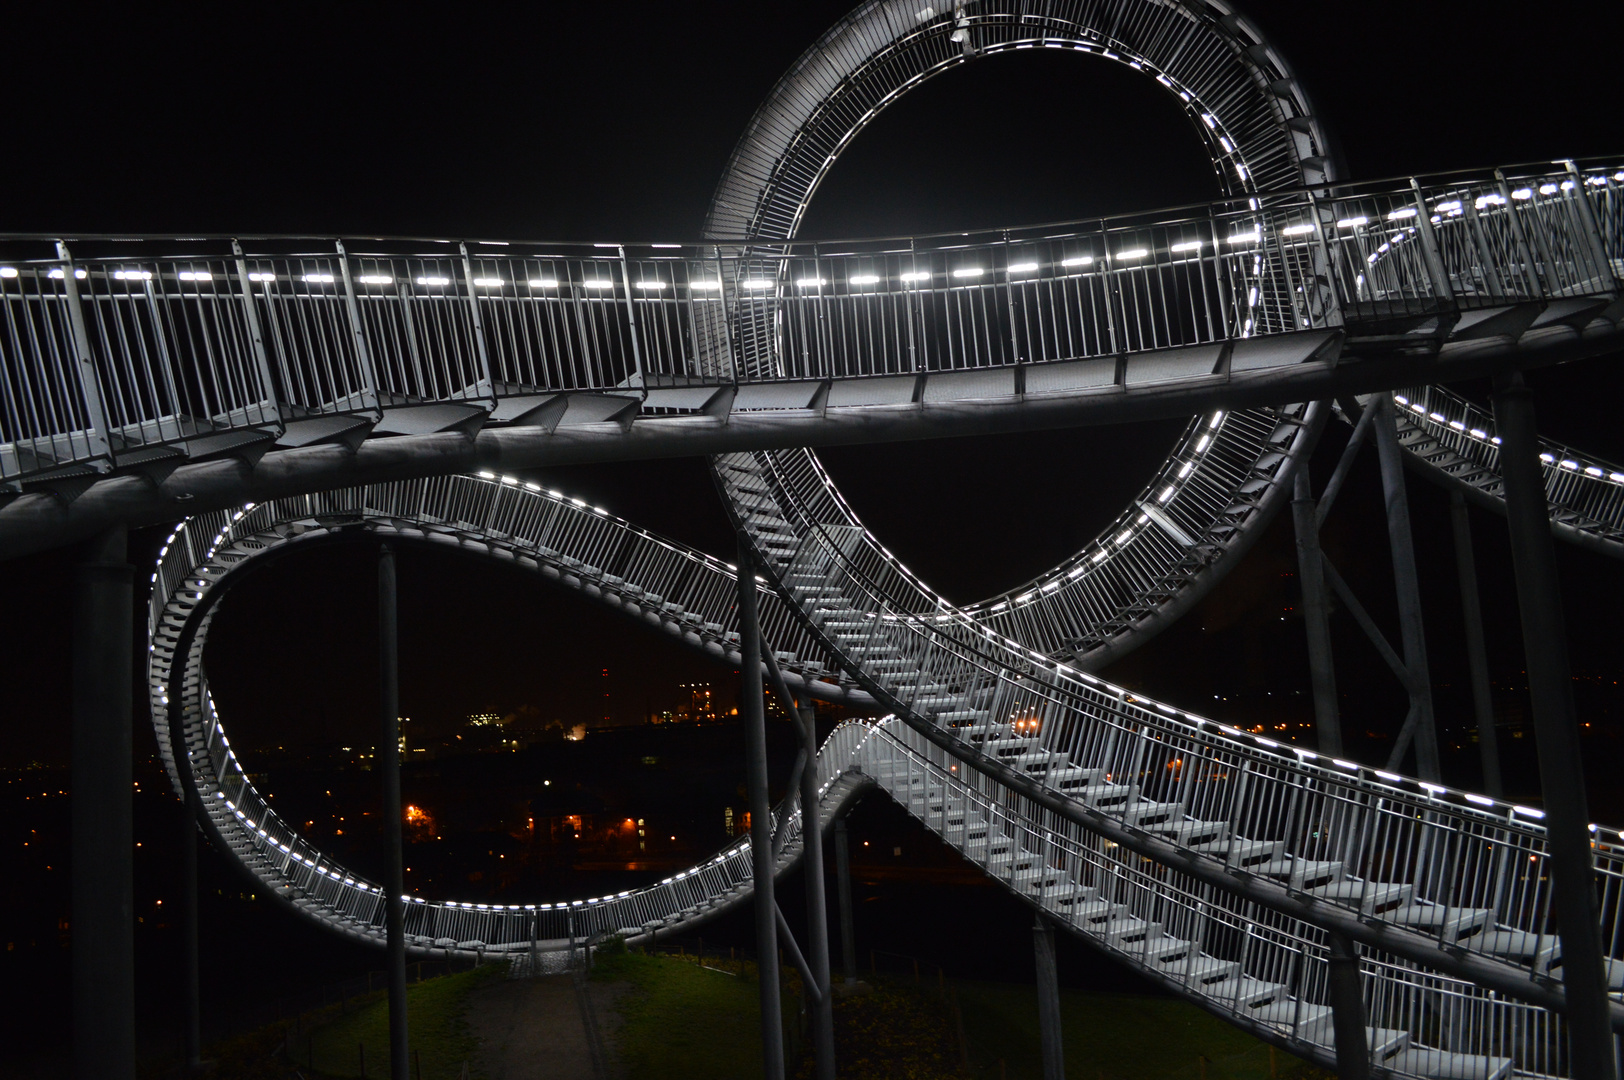 Tiger& Turtle